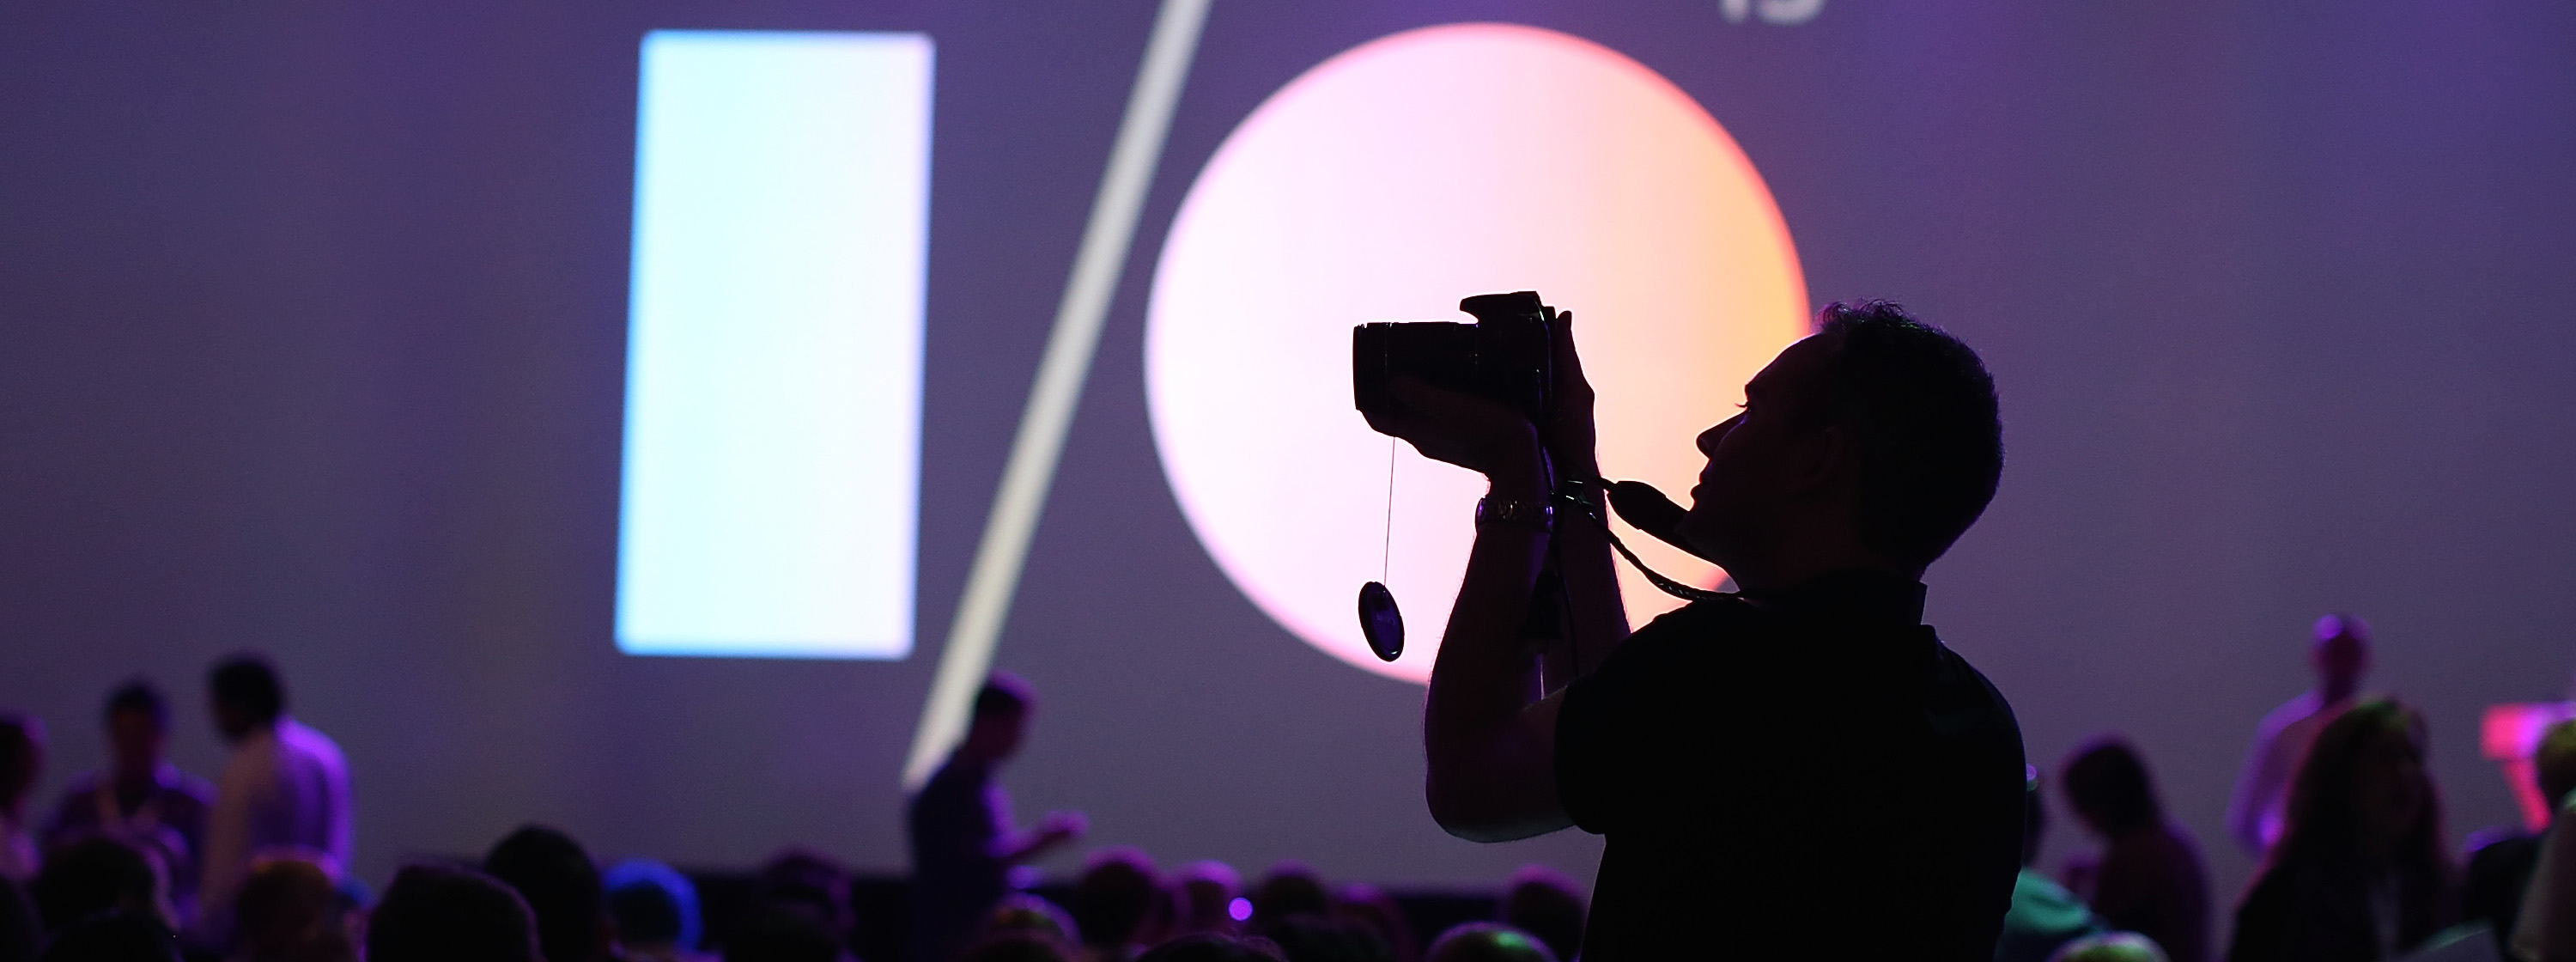 Missed Out on Google I/O Tickets? We Have 15 Codes to Give Away